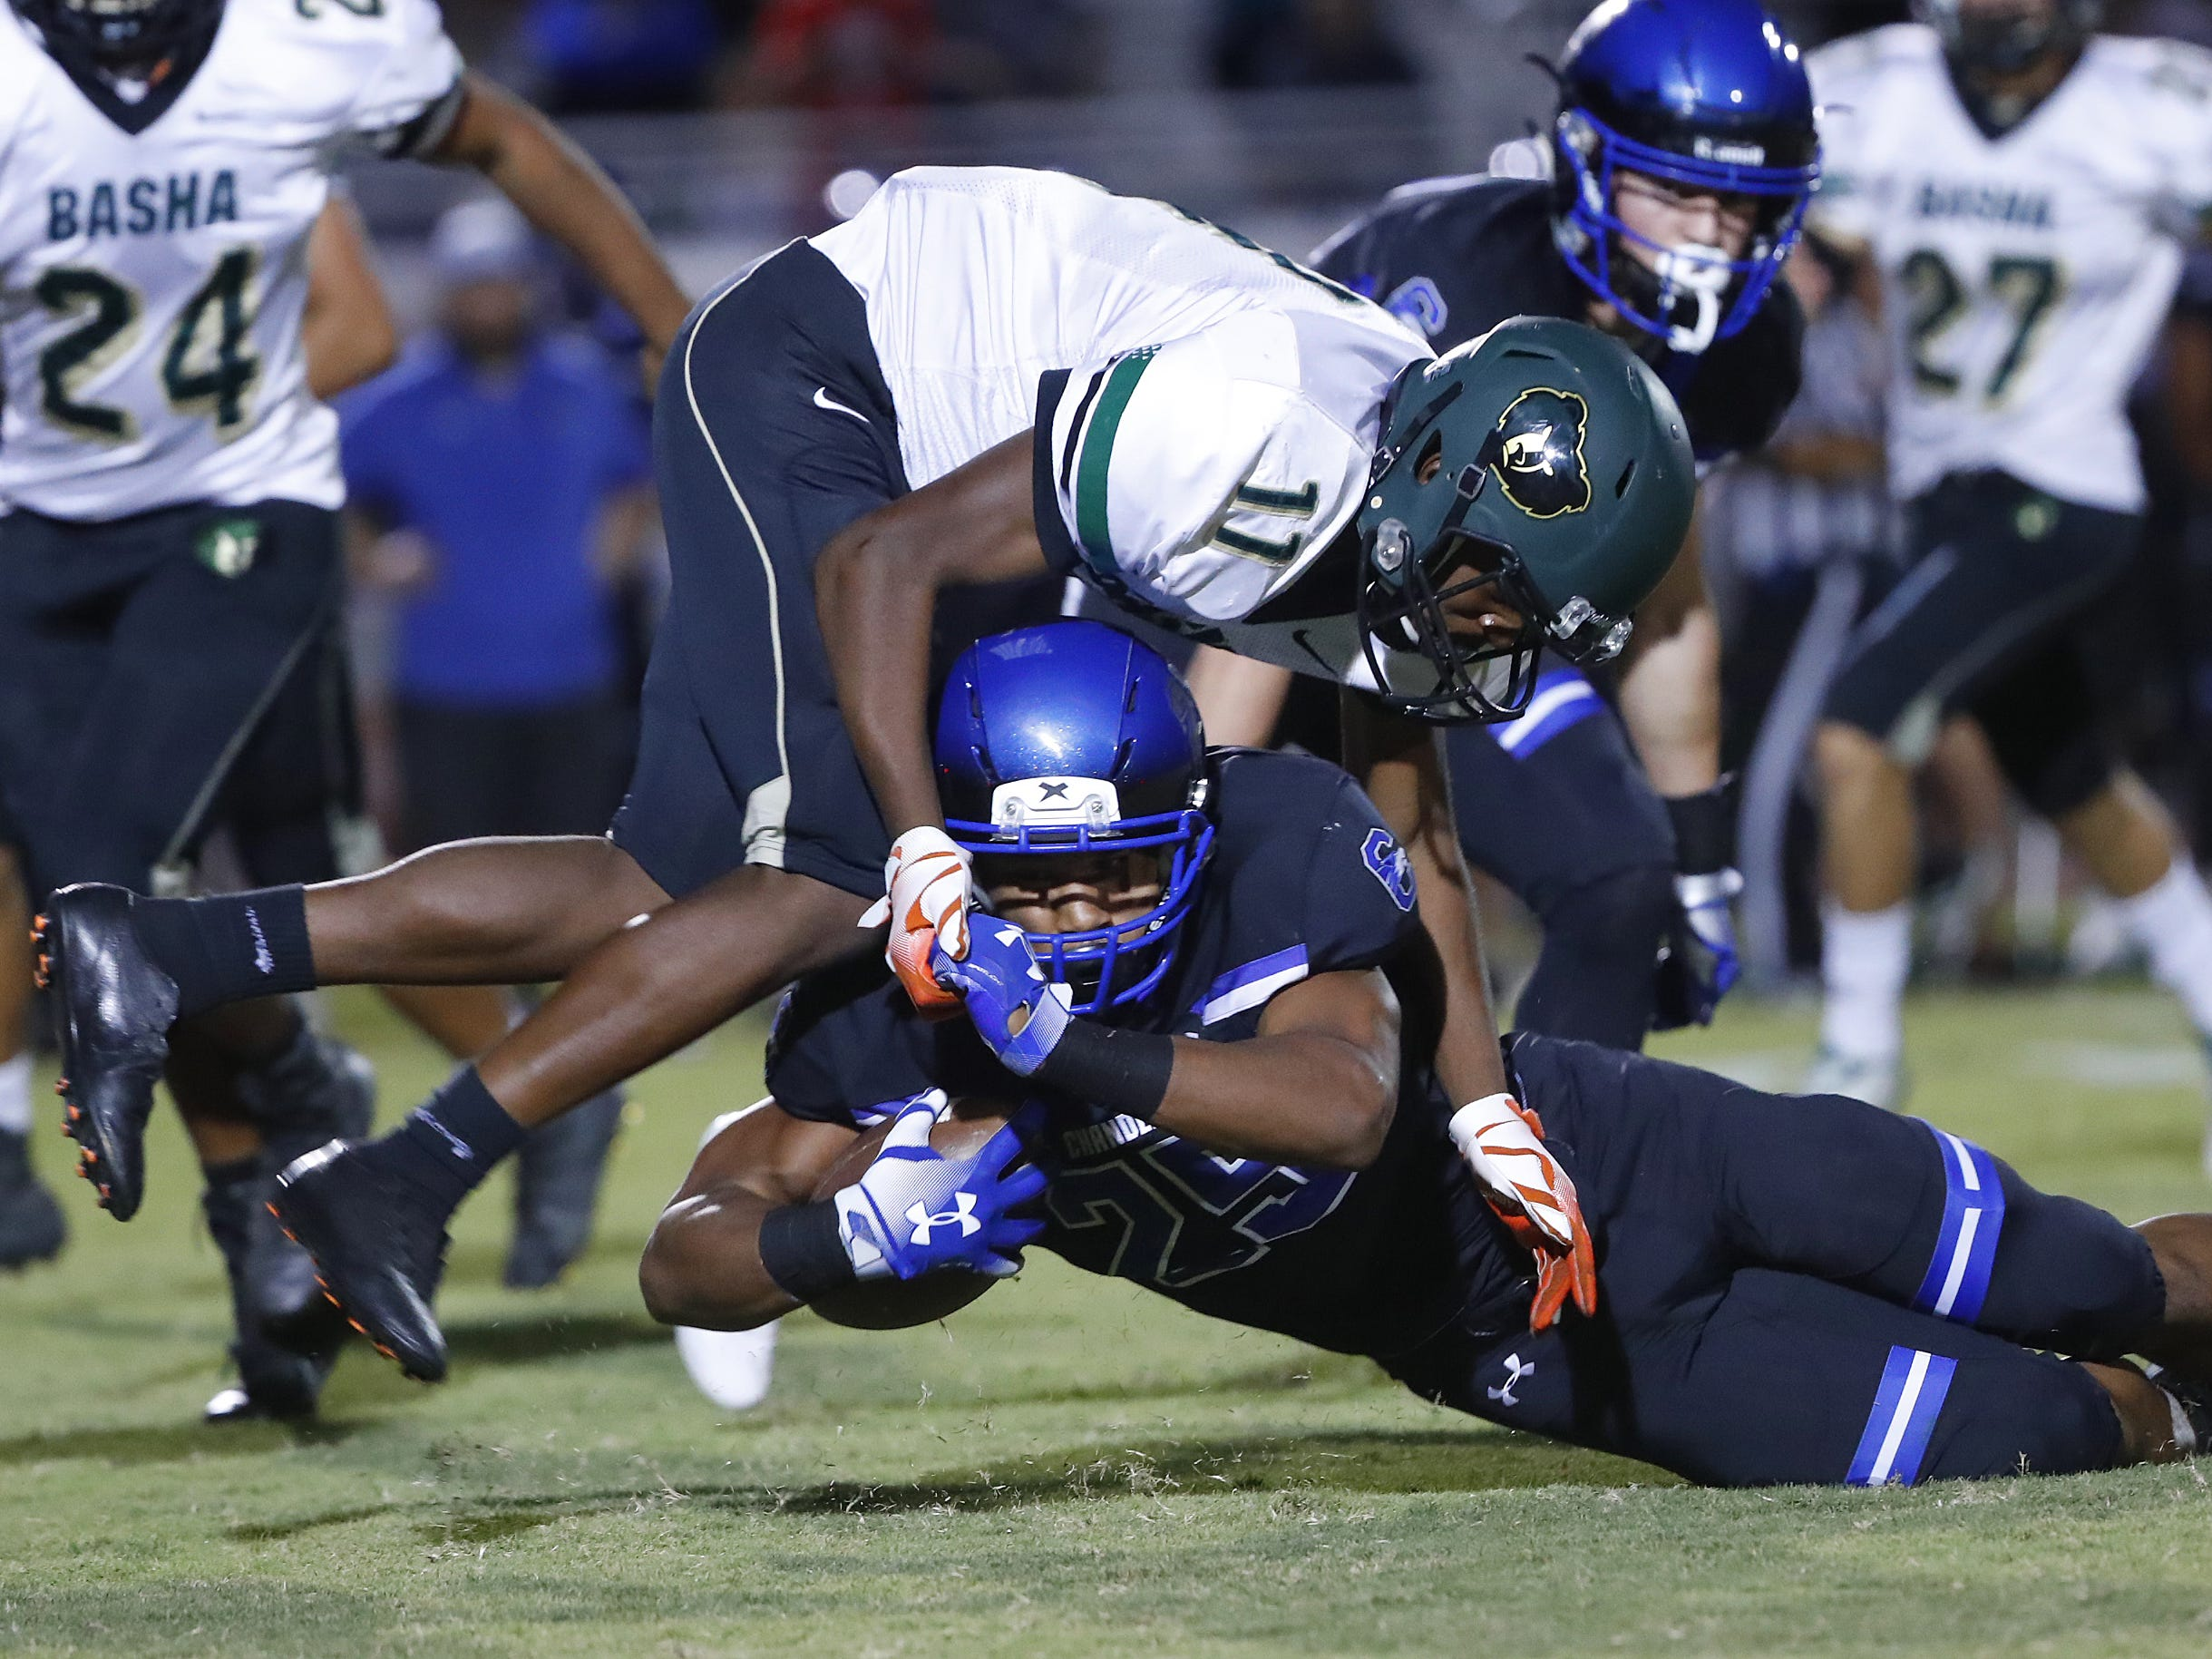 Basha's Andrell Barney (11) tackles Chandler's DeCarlos Brooks (25) at Chandler High School in Chandler, Ariz. on October 12, 2018.